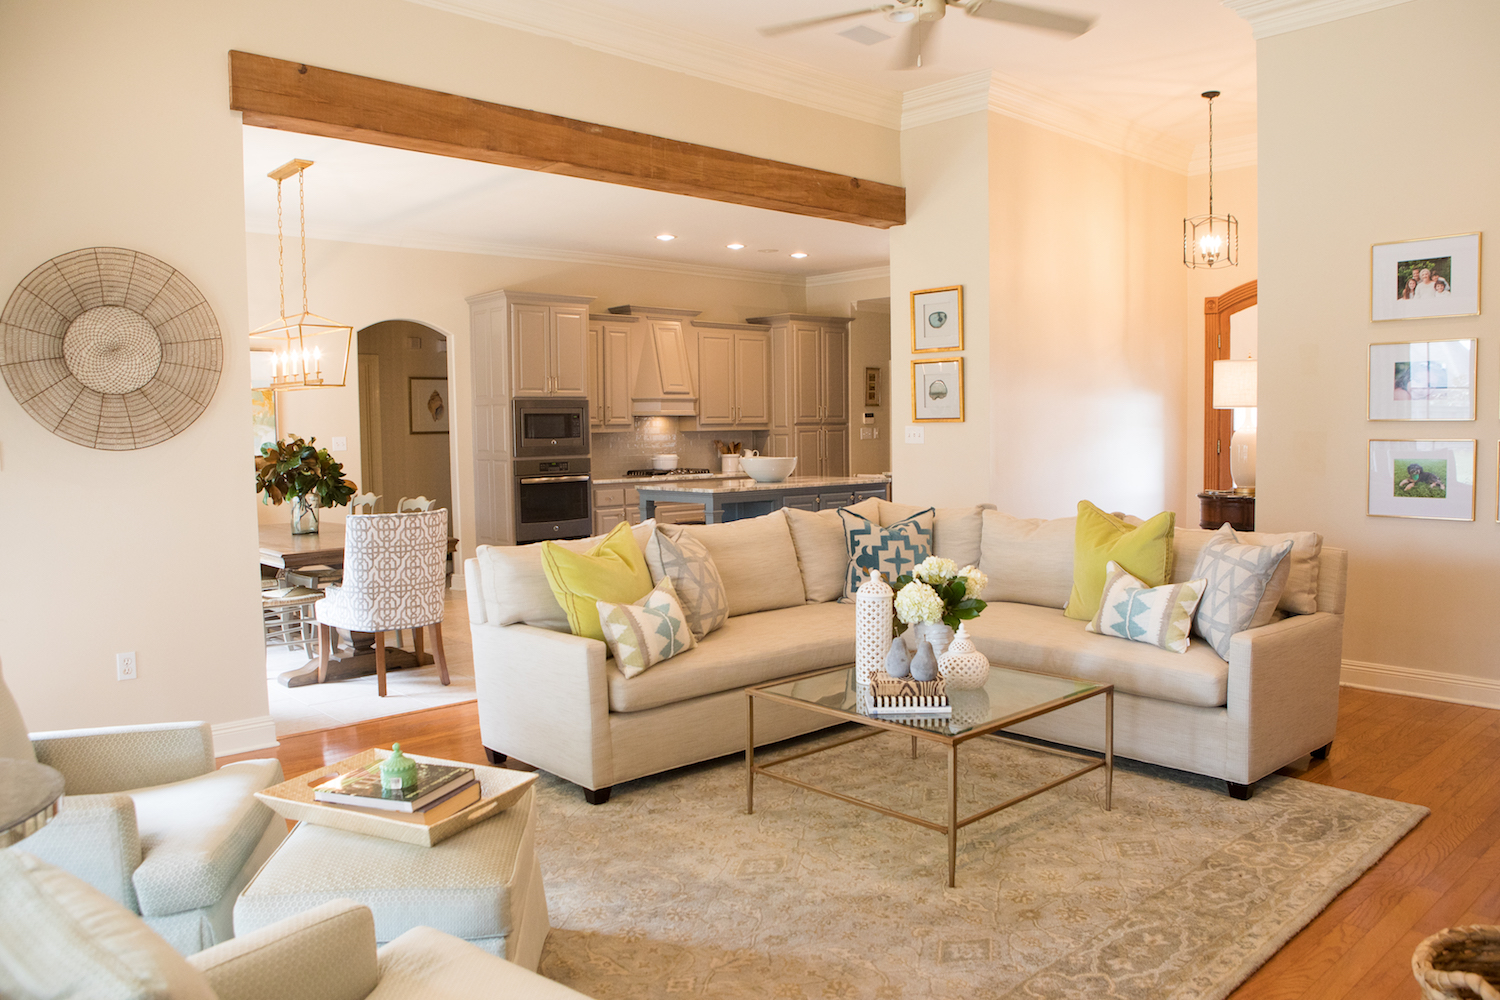 Open concept floor plan with natural light and blue accents